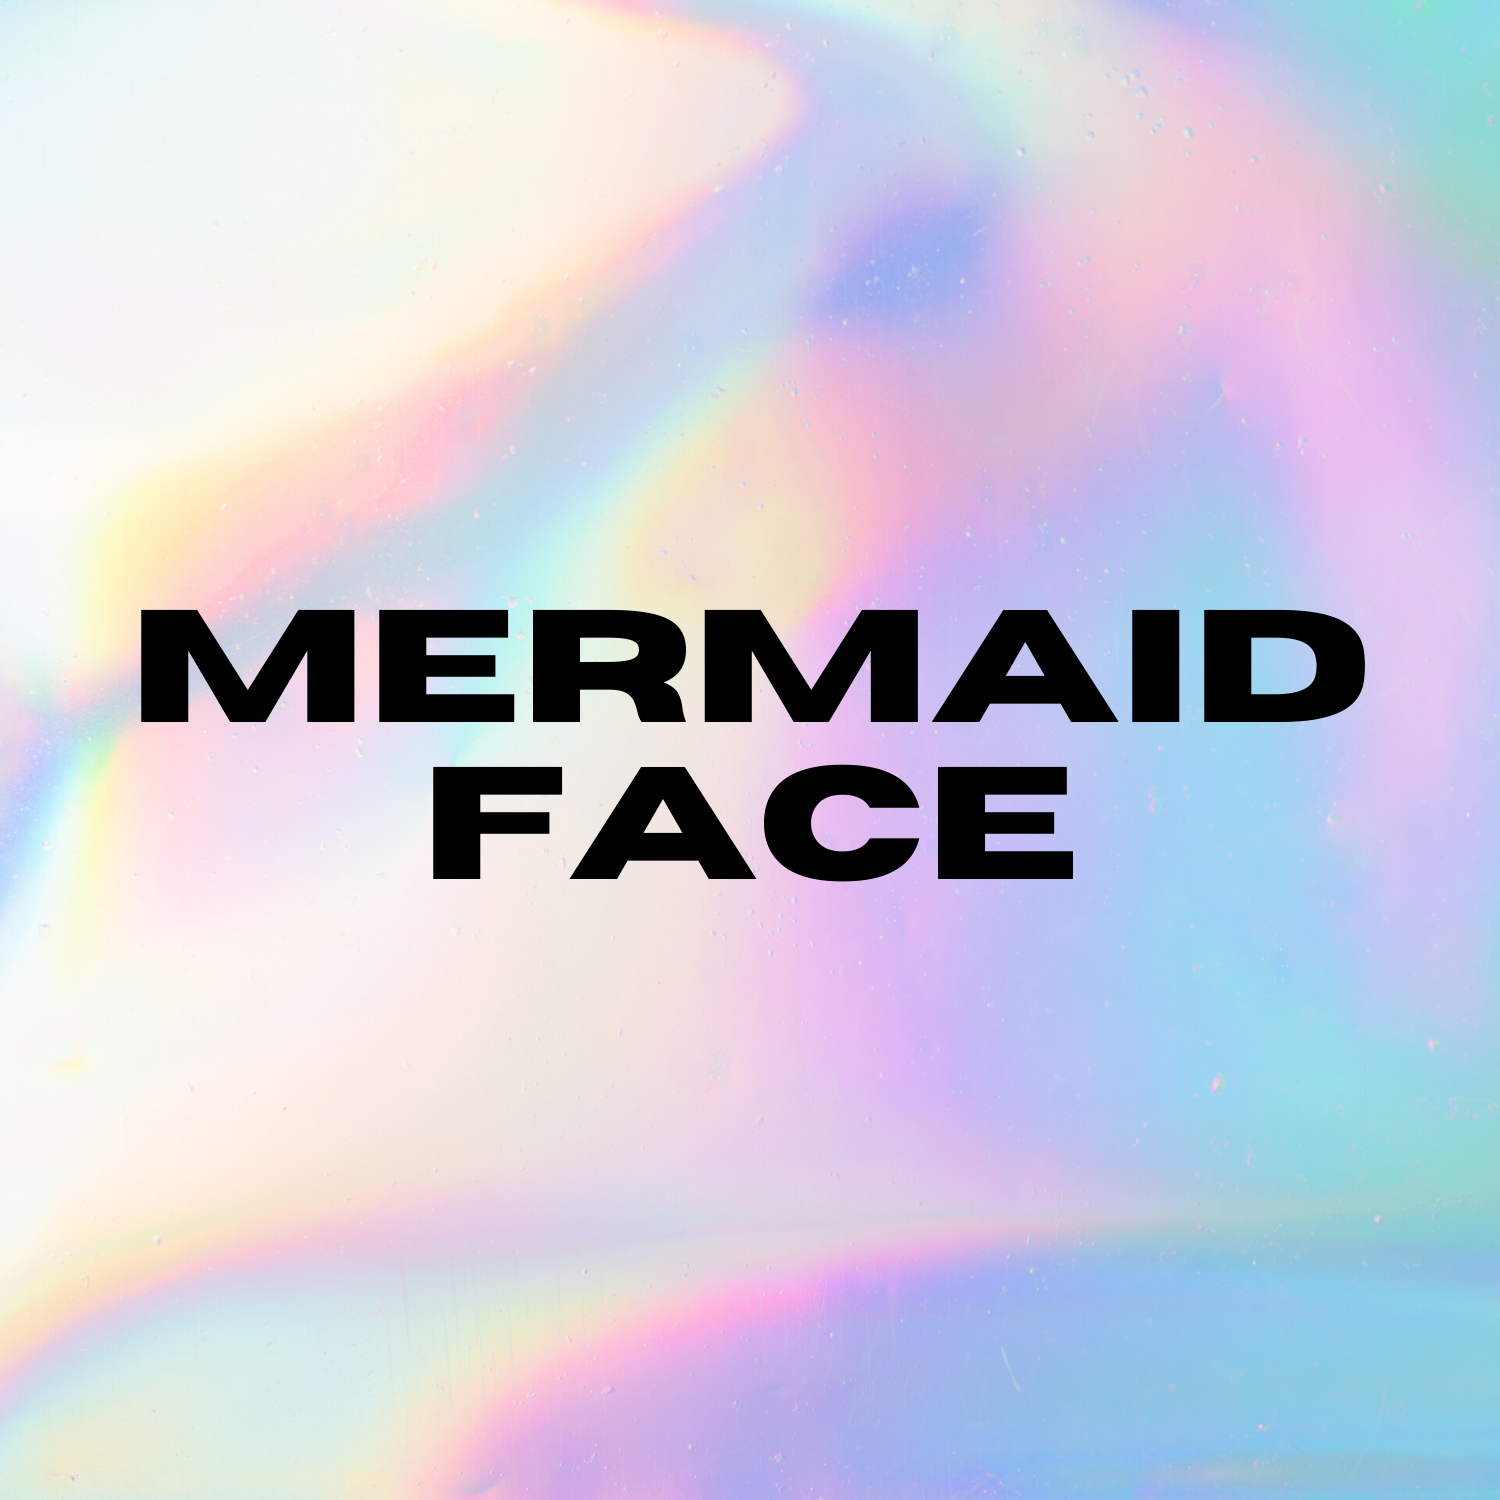 Mermaid Face logo